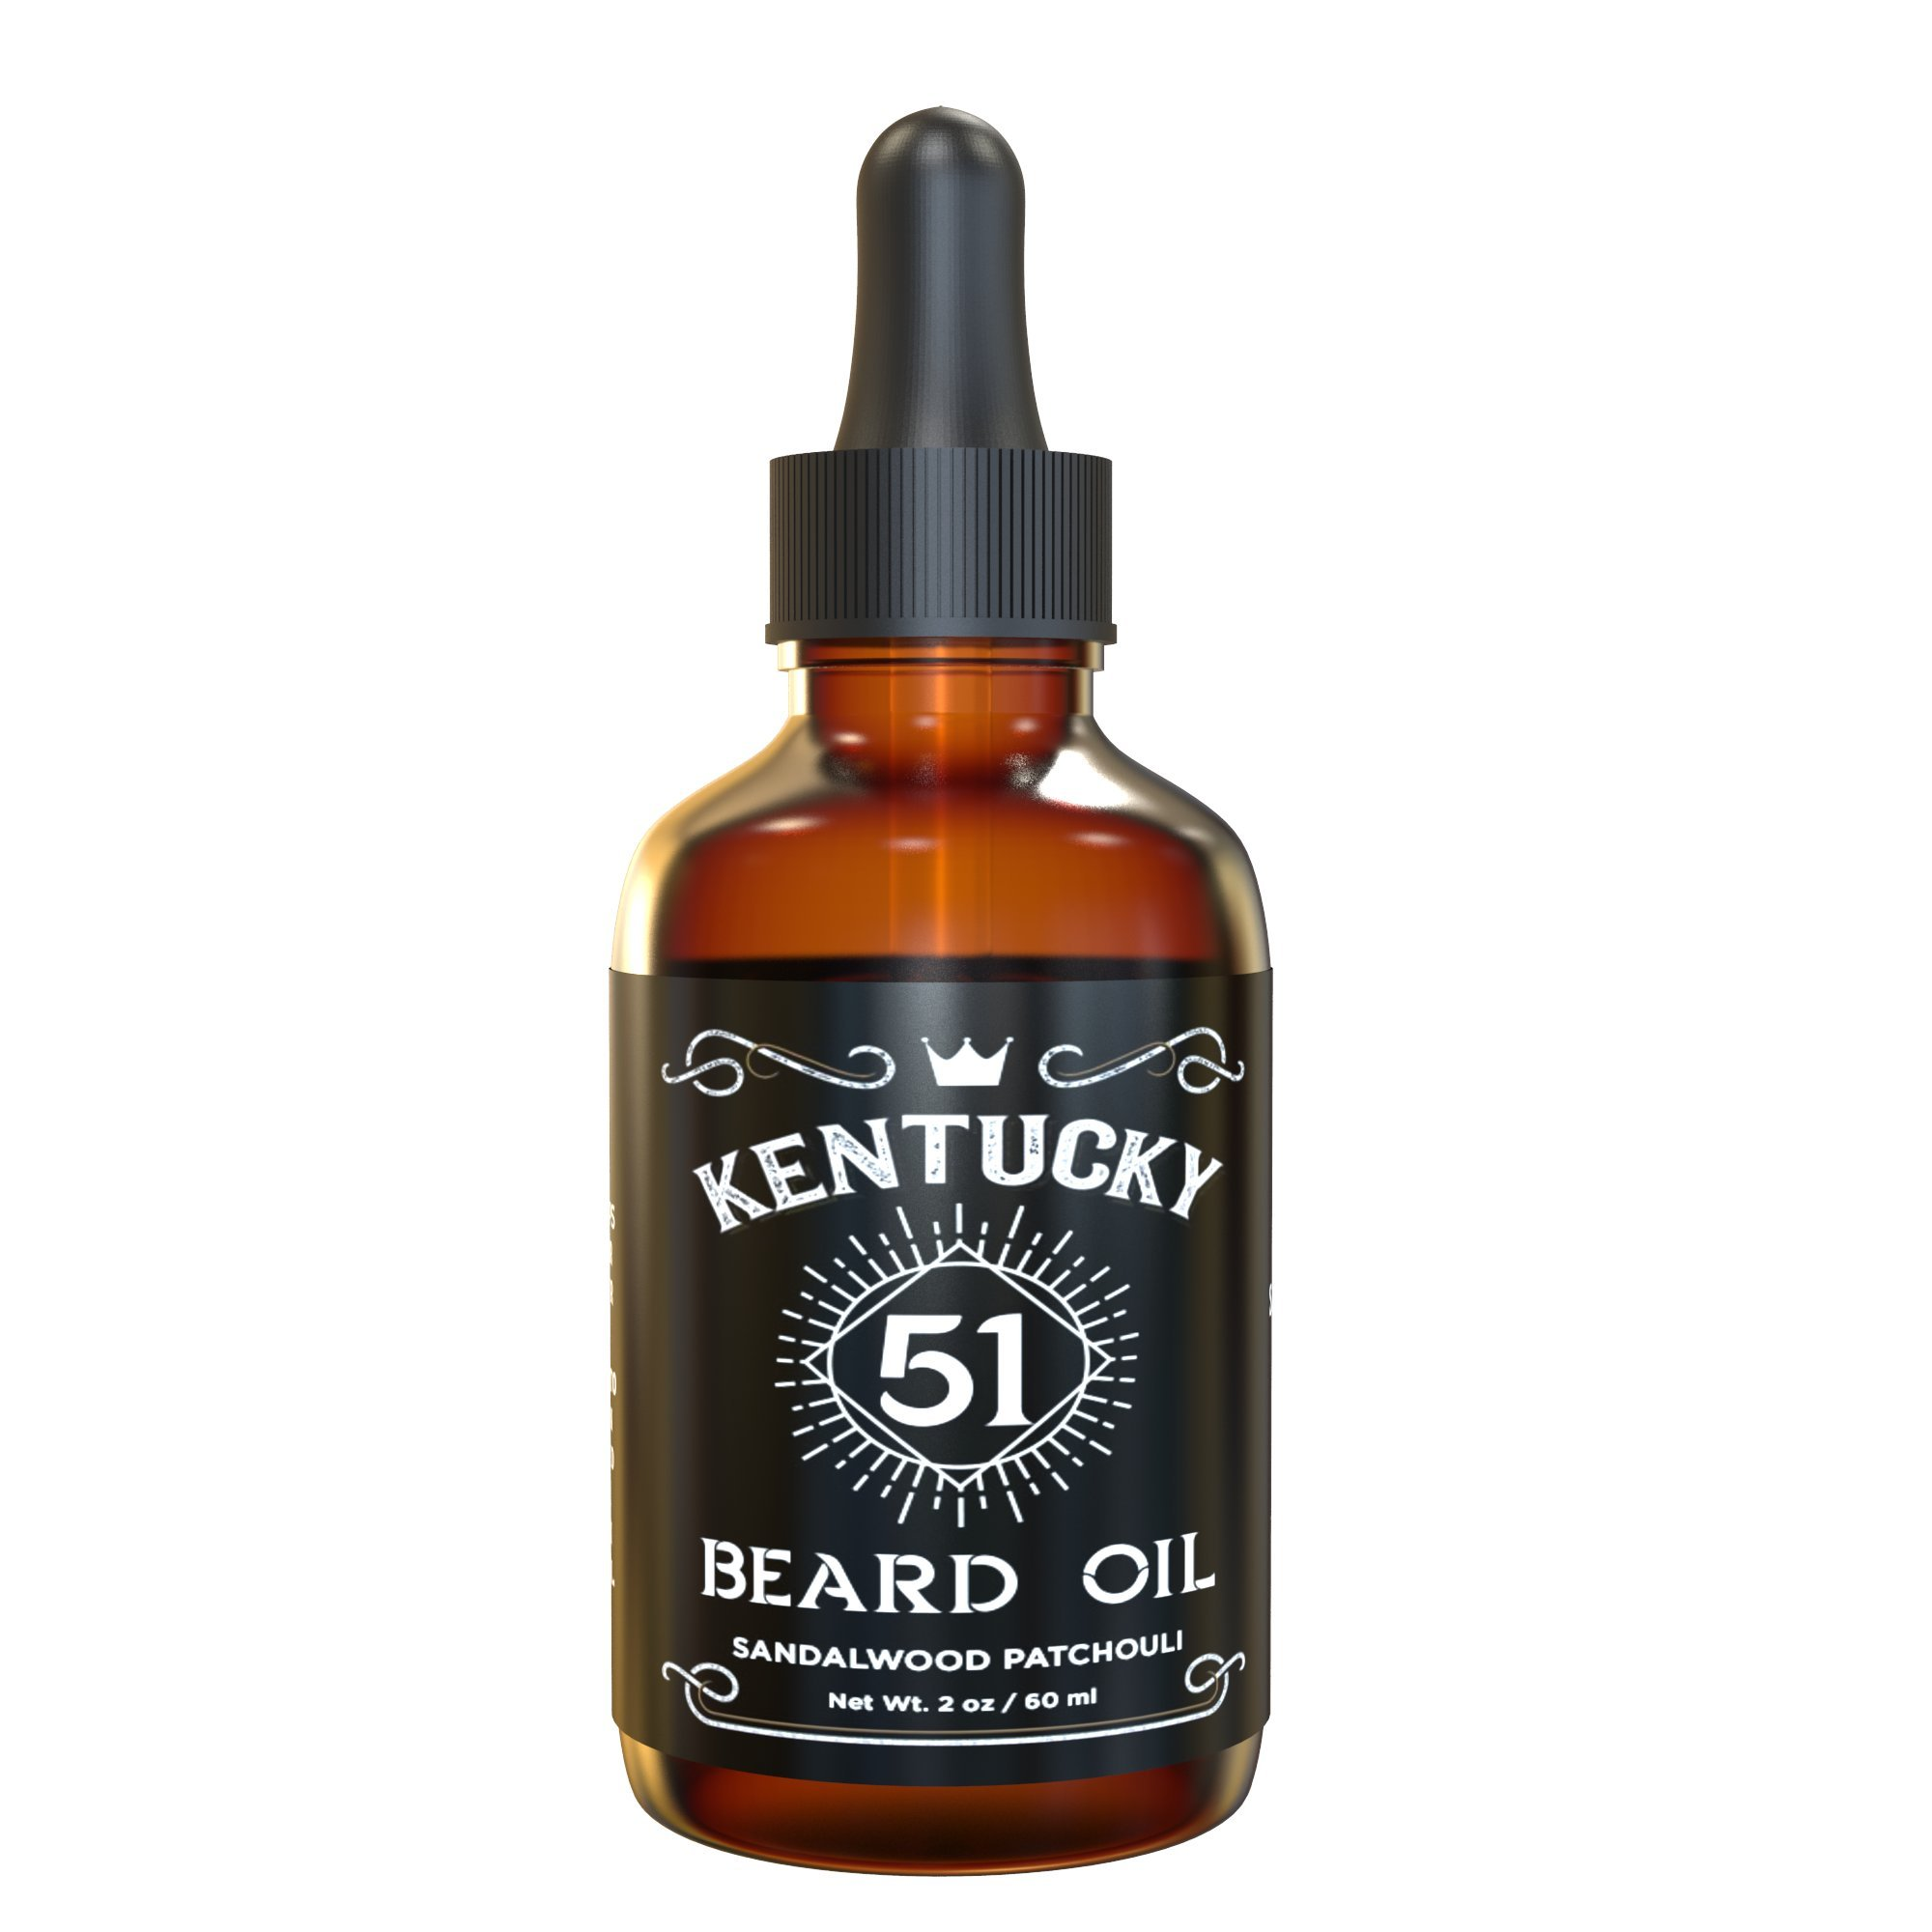 Best Beard Oil - Conditioner & Softener for Men - Sandalwood Patchouli - Premium Blend Including Argan and Jojoba - 2oz